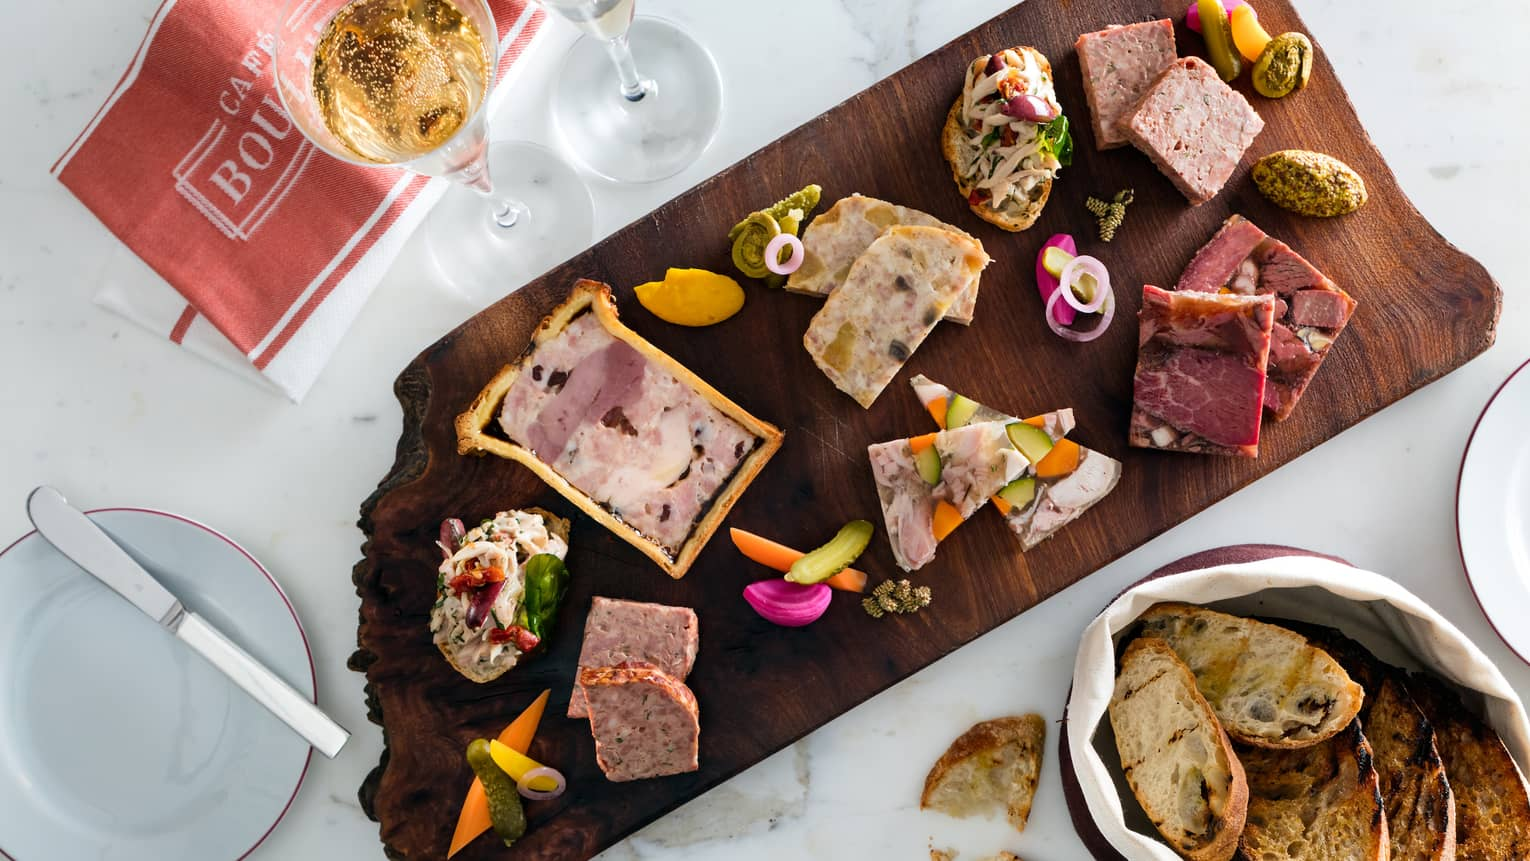 Aerial view of charcuterie board with pate, pickles, toasts